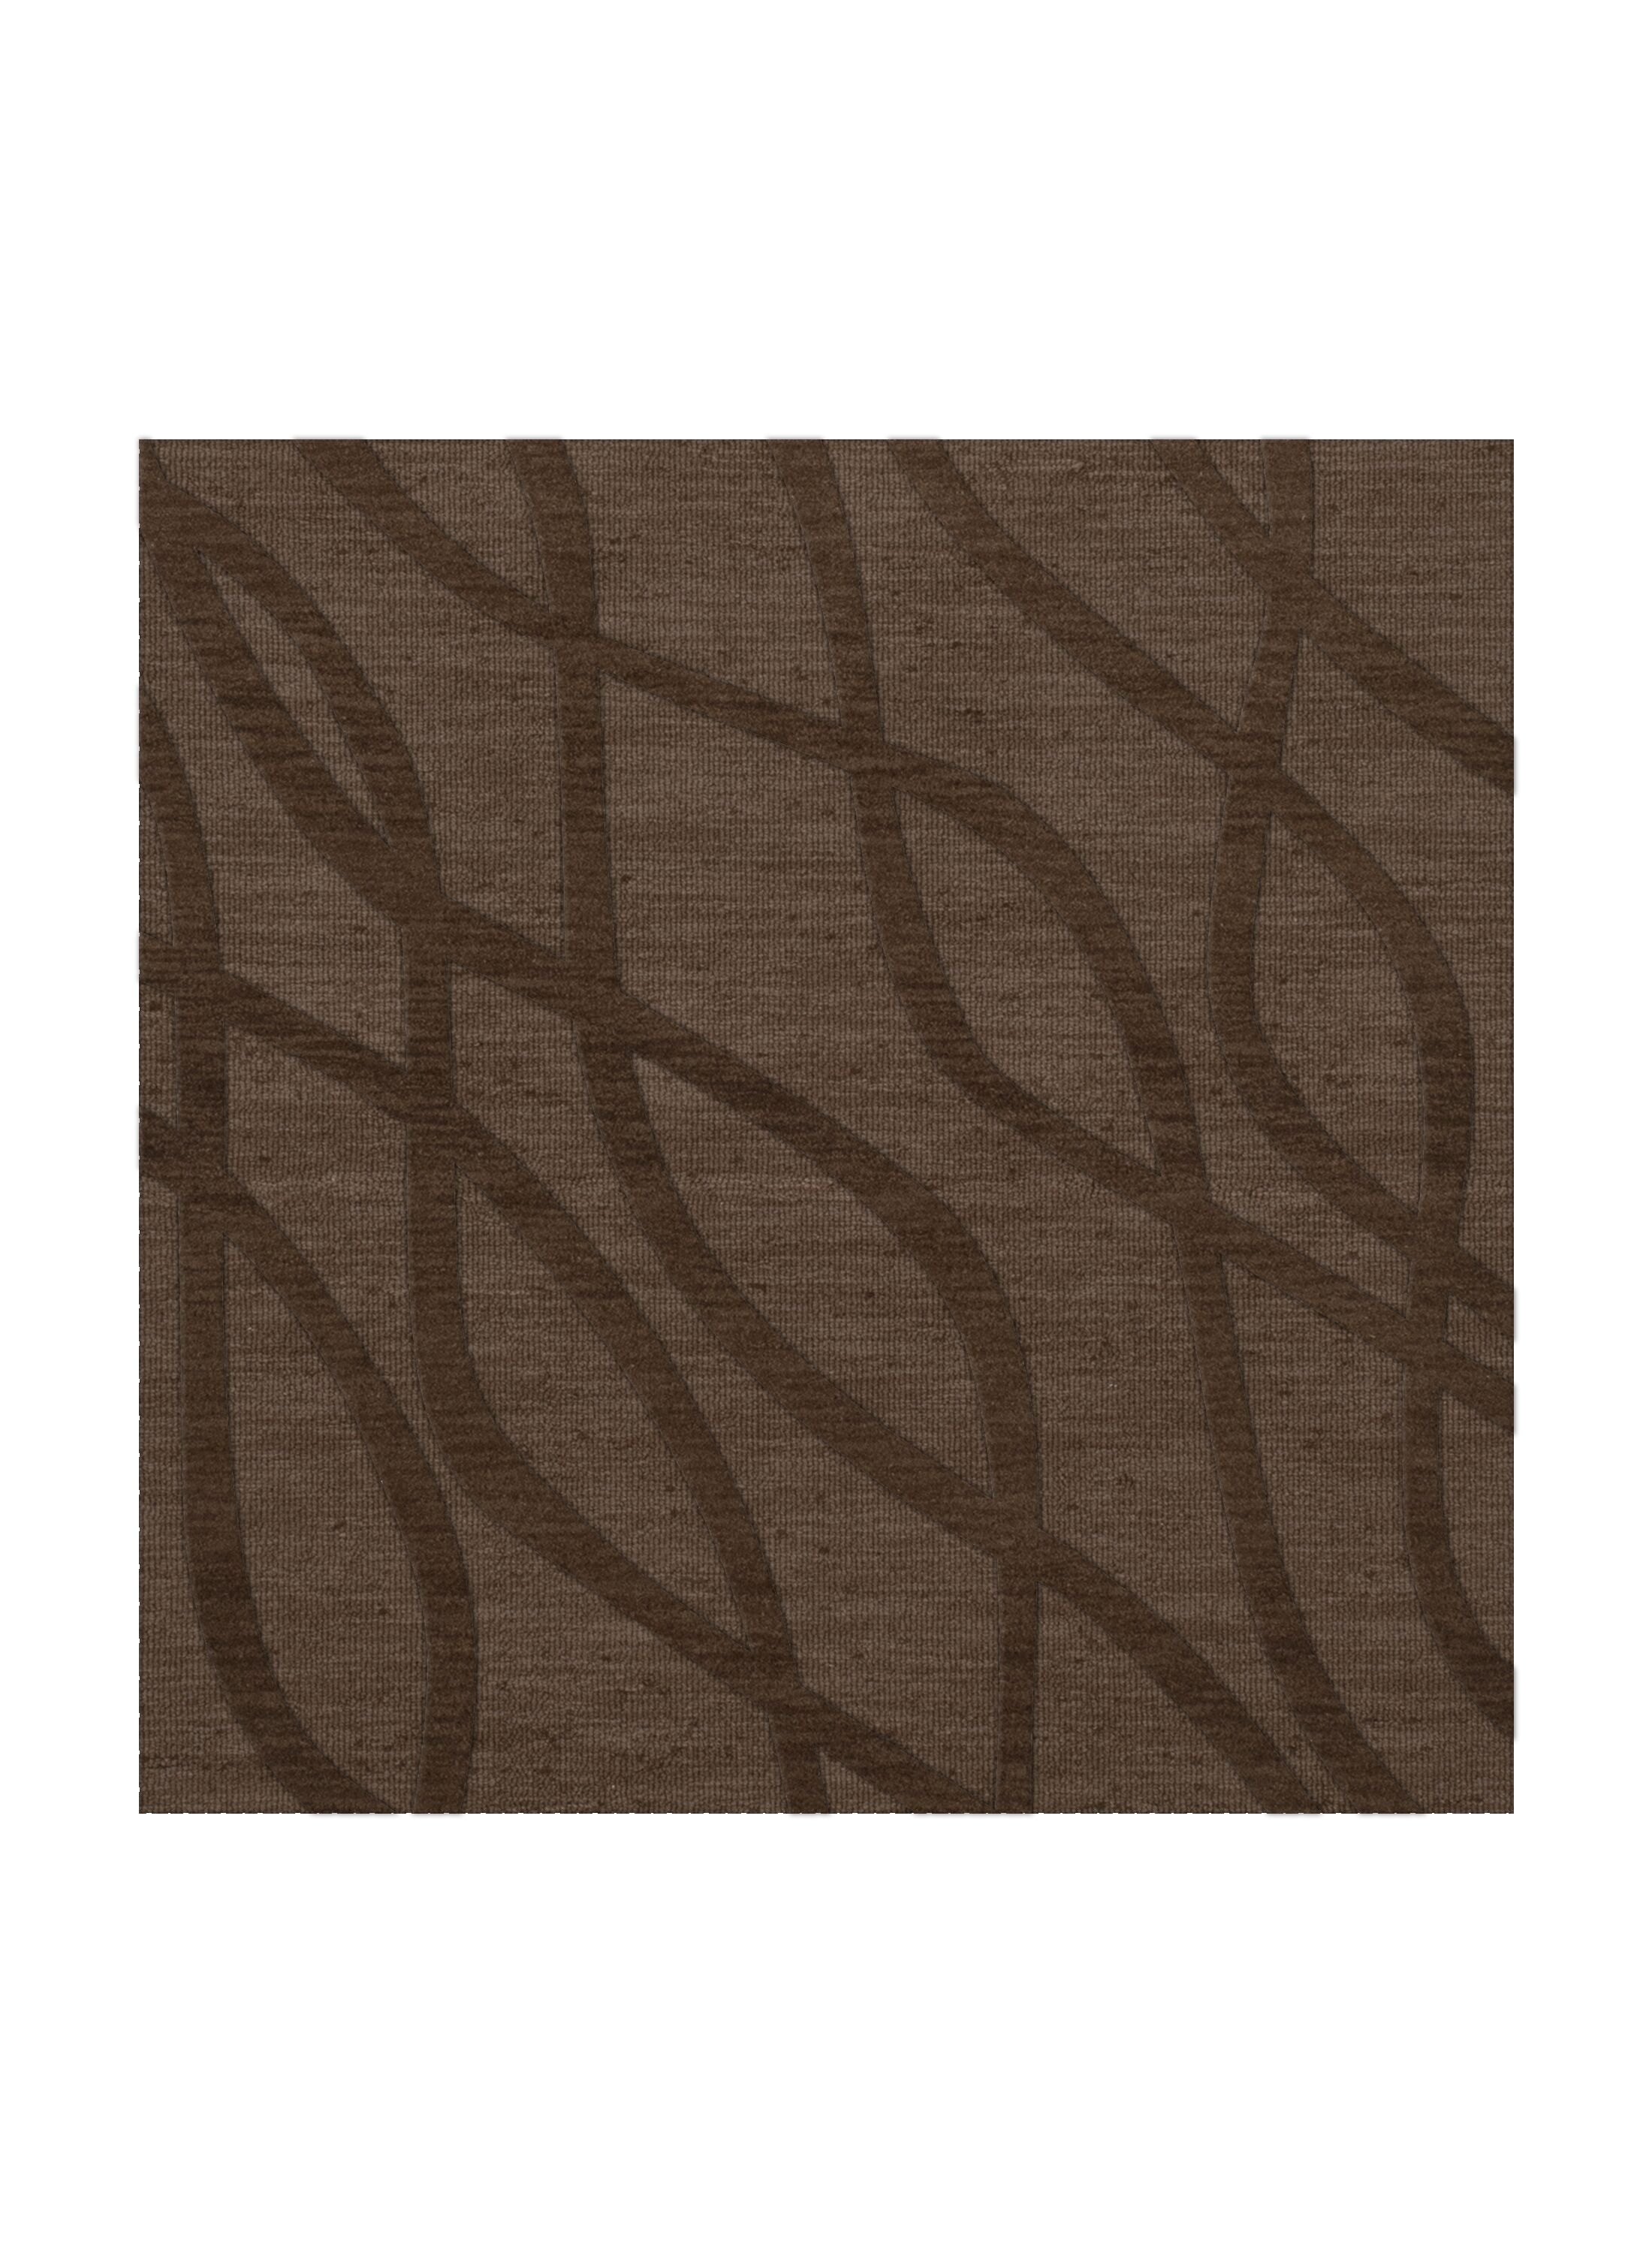 Dover Tufted Wool Mocha Area Rug Rug Size: Square 6'